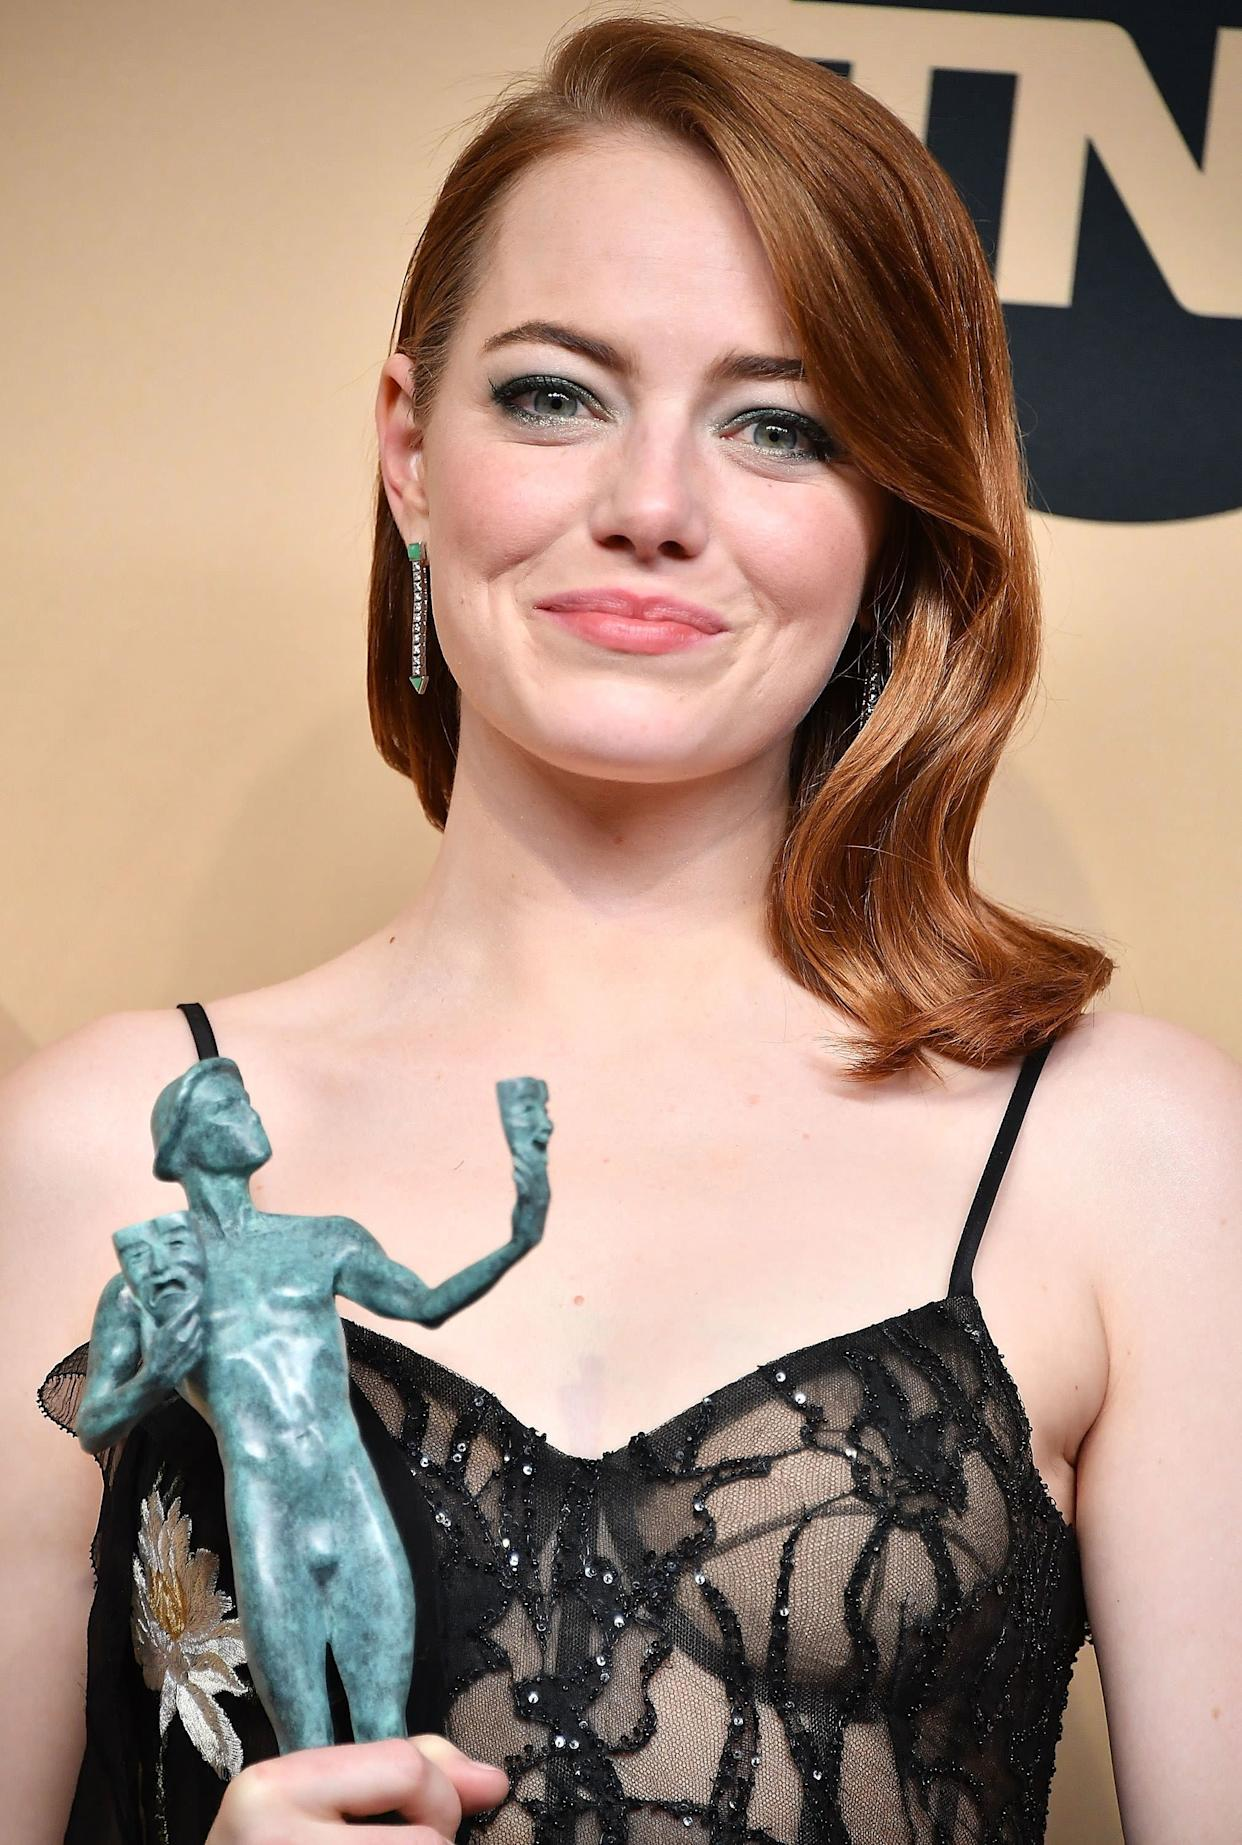 Emma Stone also addressed the ban during&amp;nbsp;the SAG Awards.<br><br>&amp;ldquo;We have to speak up. Staying silent only helps the oppressor, not the victim. Right now I hope that people seeing things that are being done that are unconstitutional and inhumane would say something.&quot;